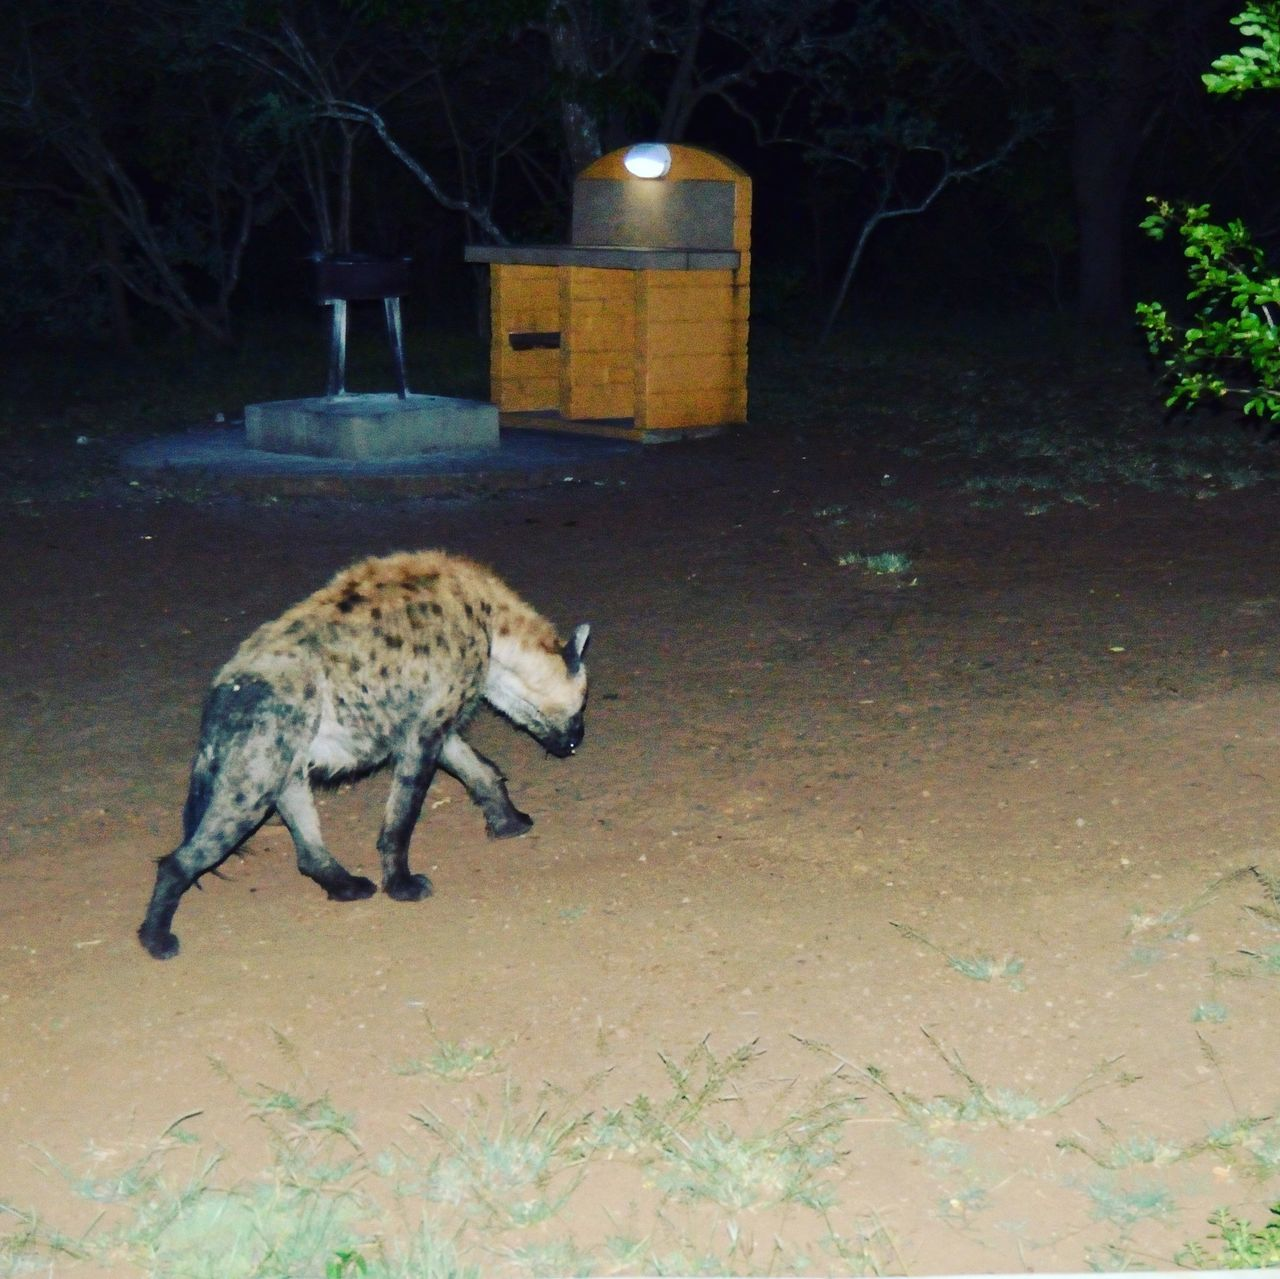 Hyena Walking By Built Structure In Forest At Night